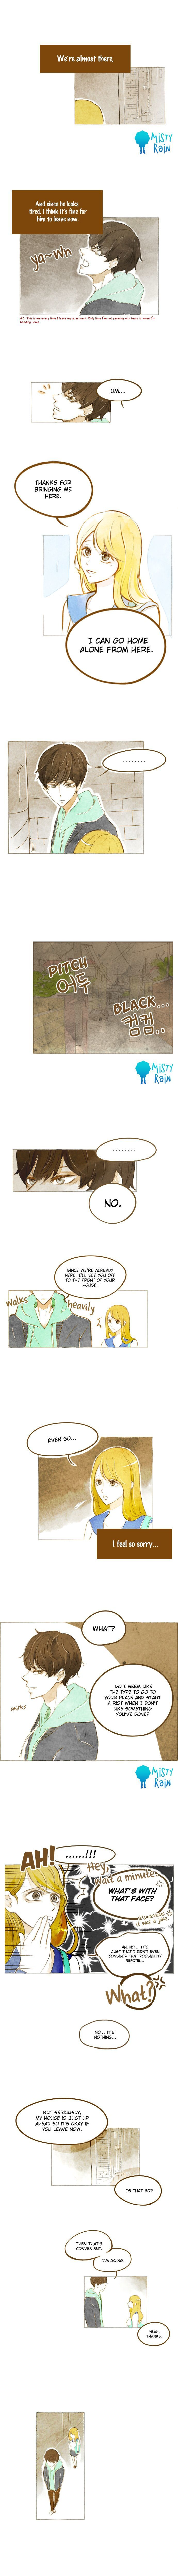 Real My Way 5 Page 2